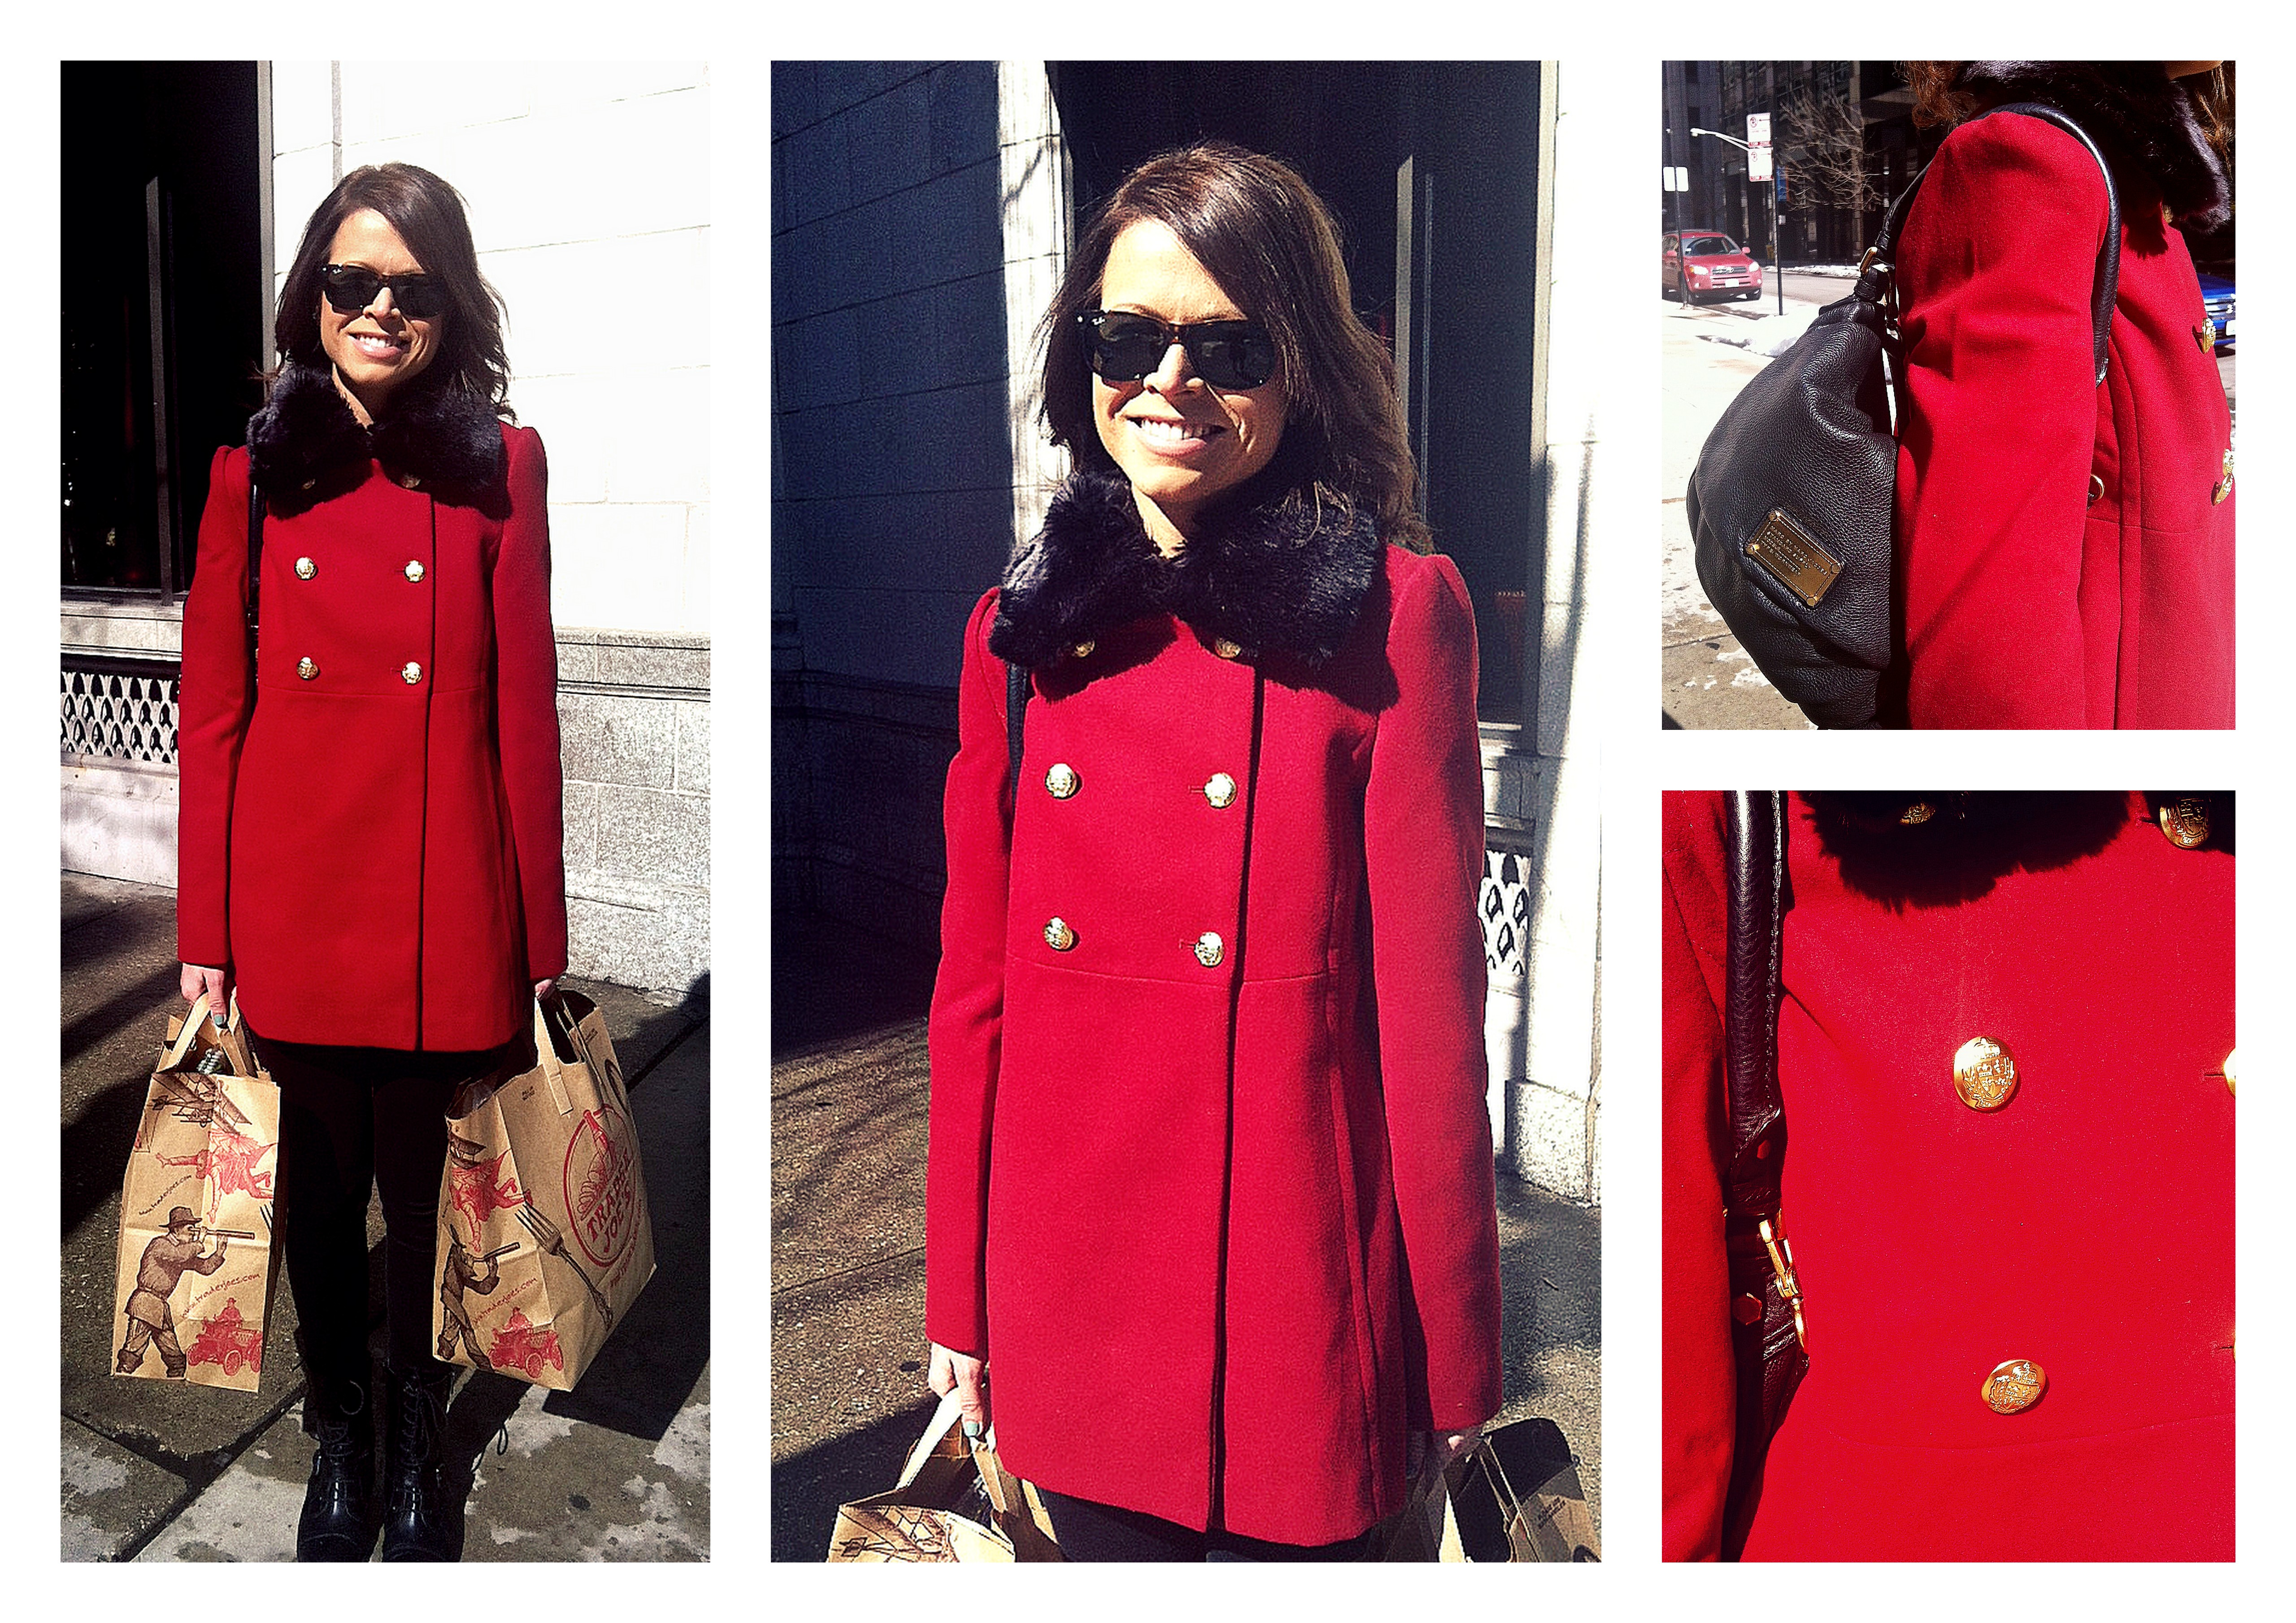 Ms. Meggie in an Express Coat, Marc Jacobs hand bag & Rayban Sunglasses